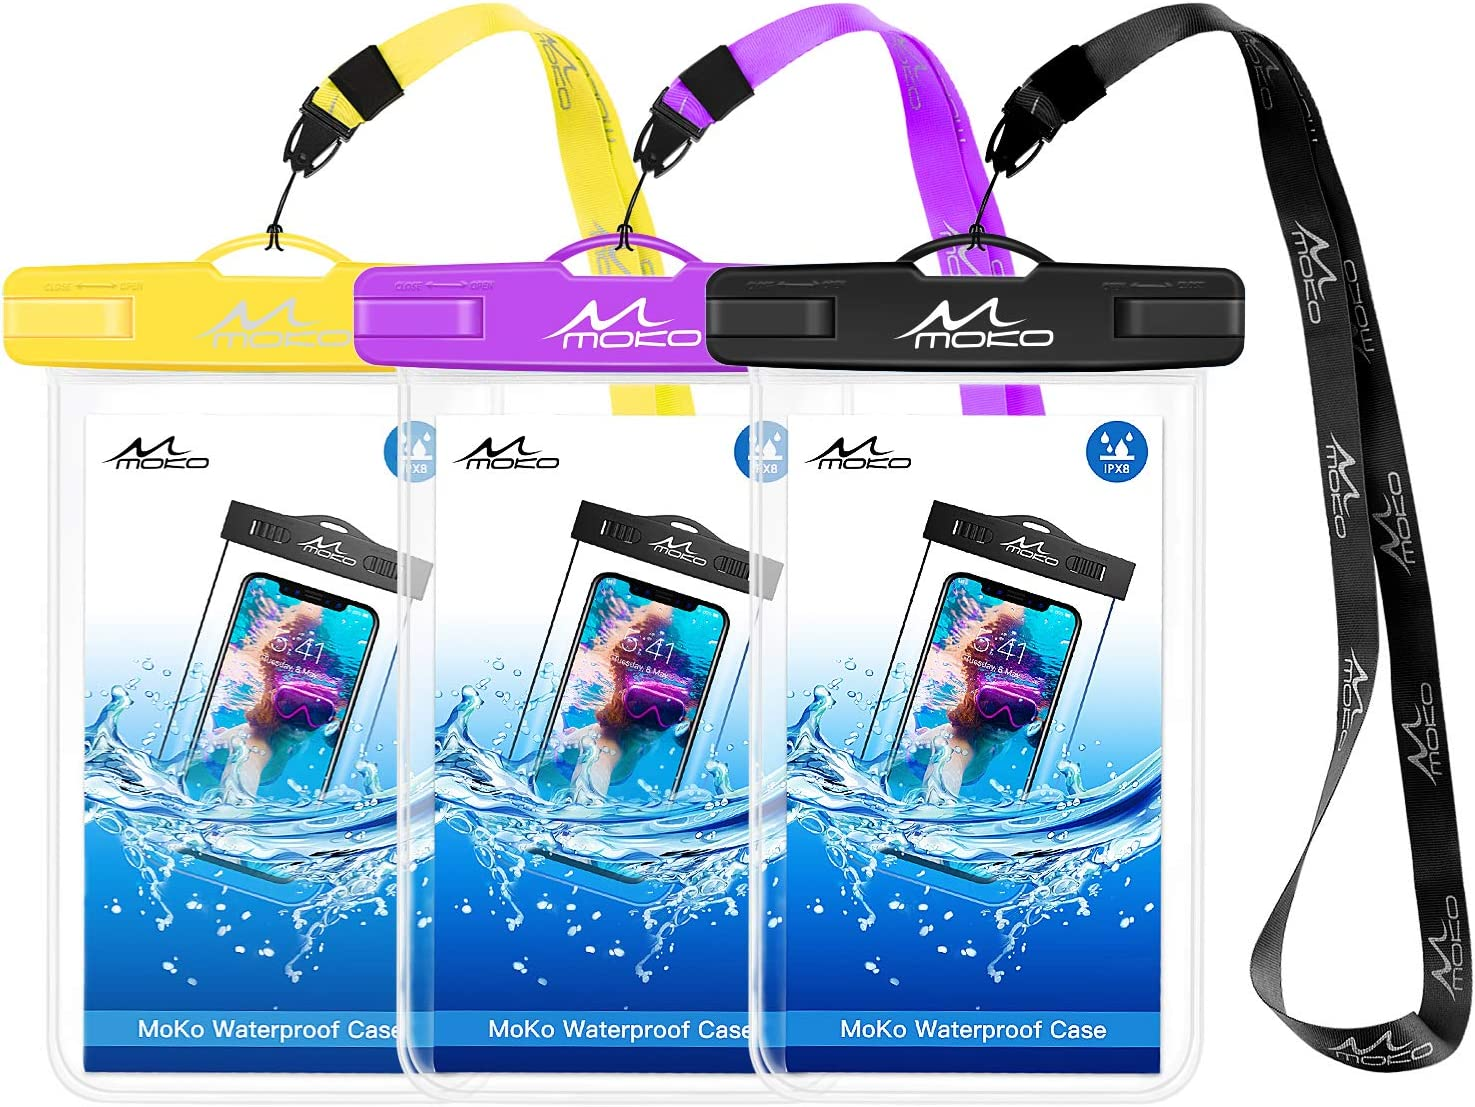 MoKo Waterproof Phone Pouch [3 Pack], Underwater Phone Case Dry Bag with Lanyard Compatible with iPhone 13/13 Pro Max/iPhone 12/12 Pro Max/11 Pro Max, X/Xr/Xs Max, 8/7, Galaxy S21/S10/S9, Note 10/9/8